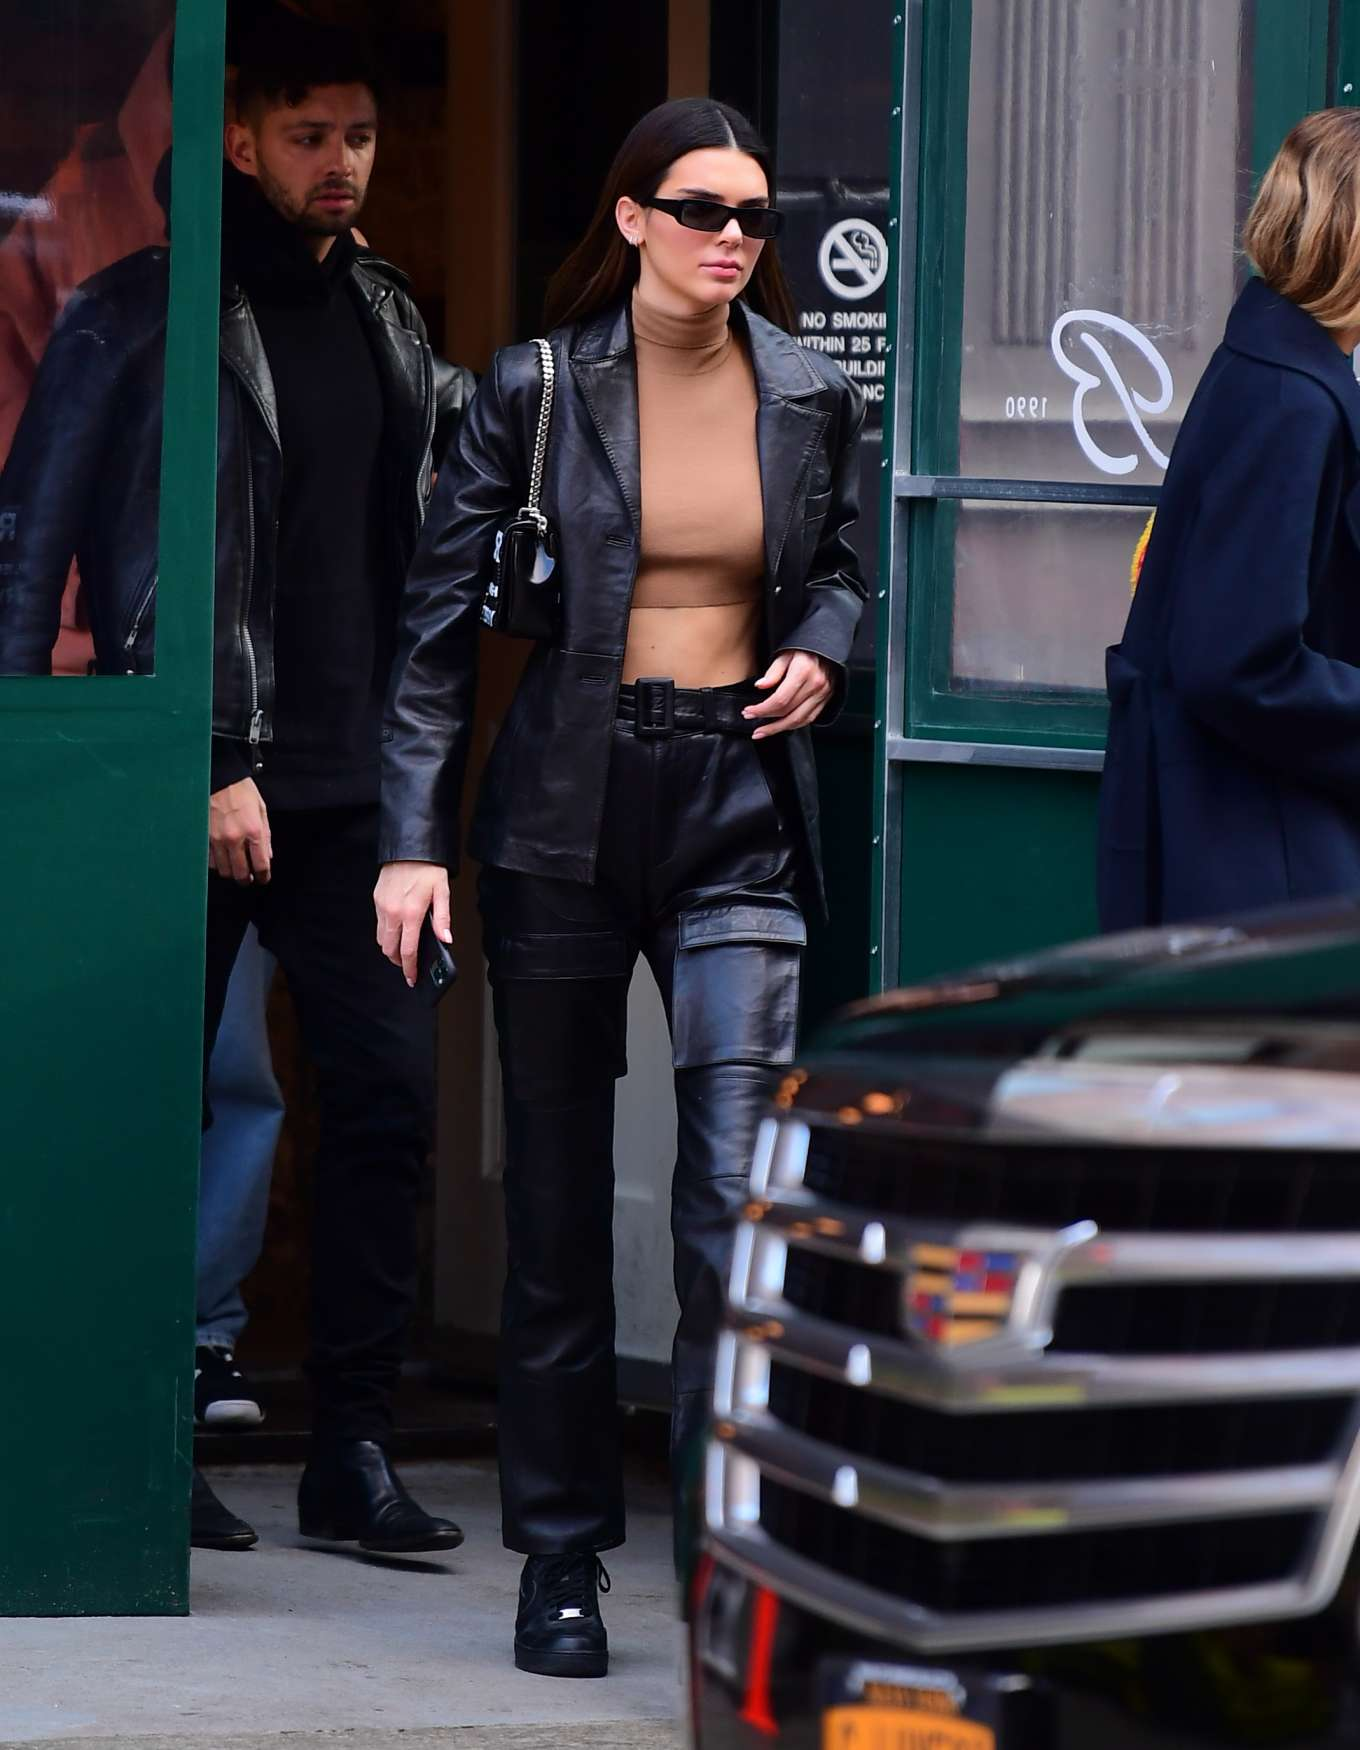 Kendall Jenner donning a matching shiny black open front leather blazer with a satin fabric, full sleeves, peak lapel collar and flap pockets